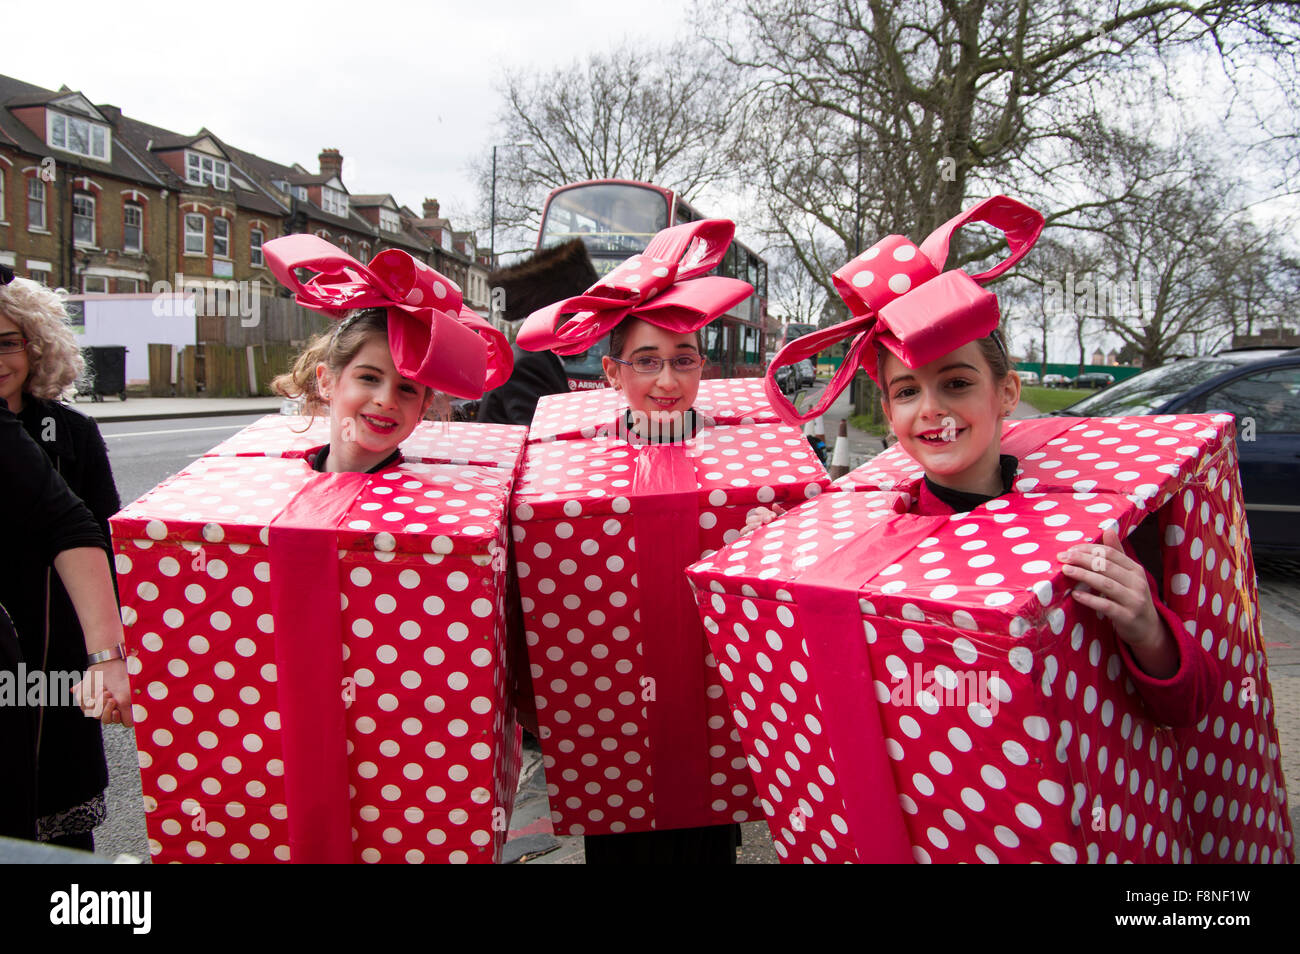 Three cheerful girls in homemade fancy dress costumes for ...